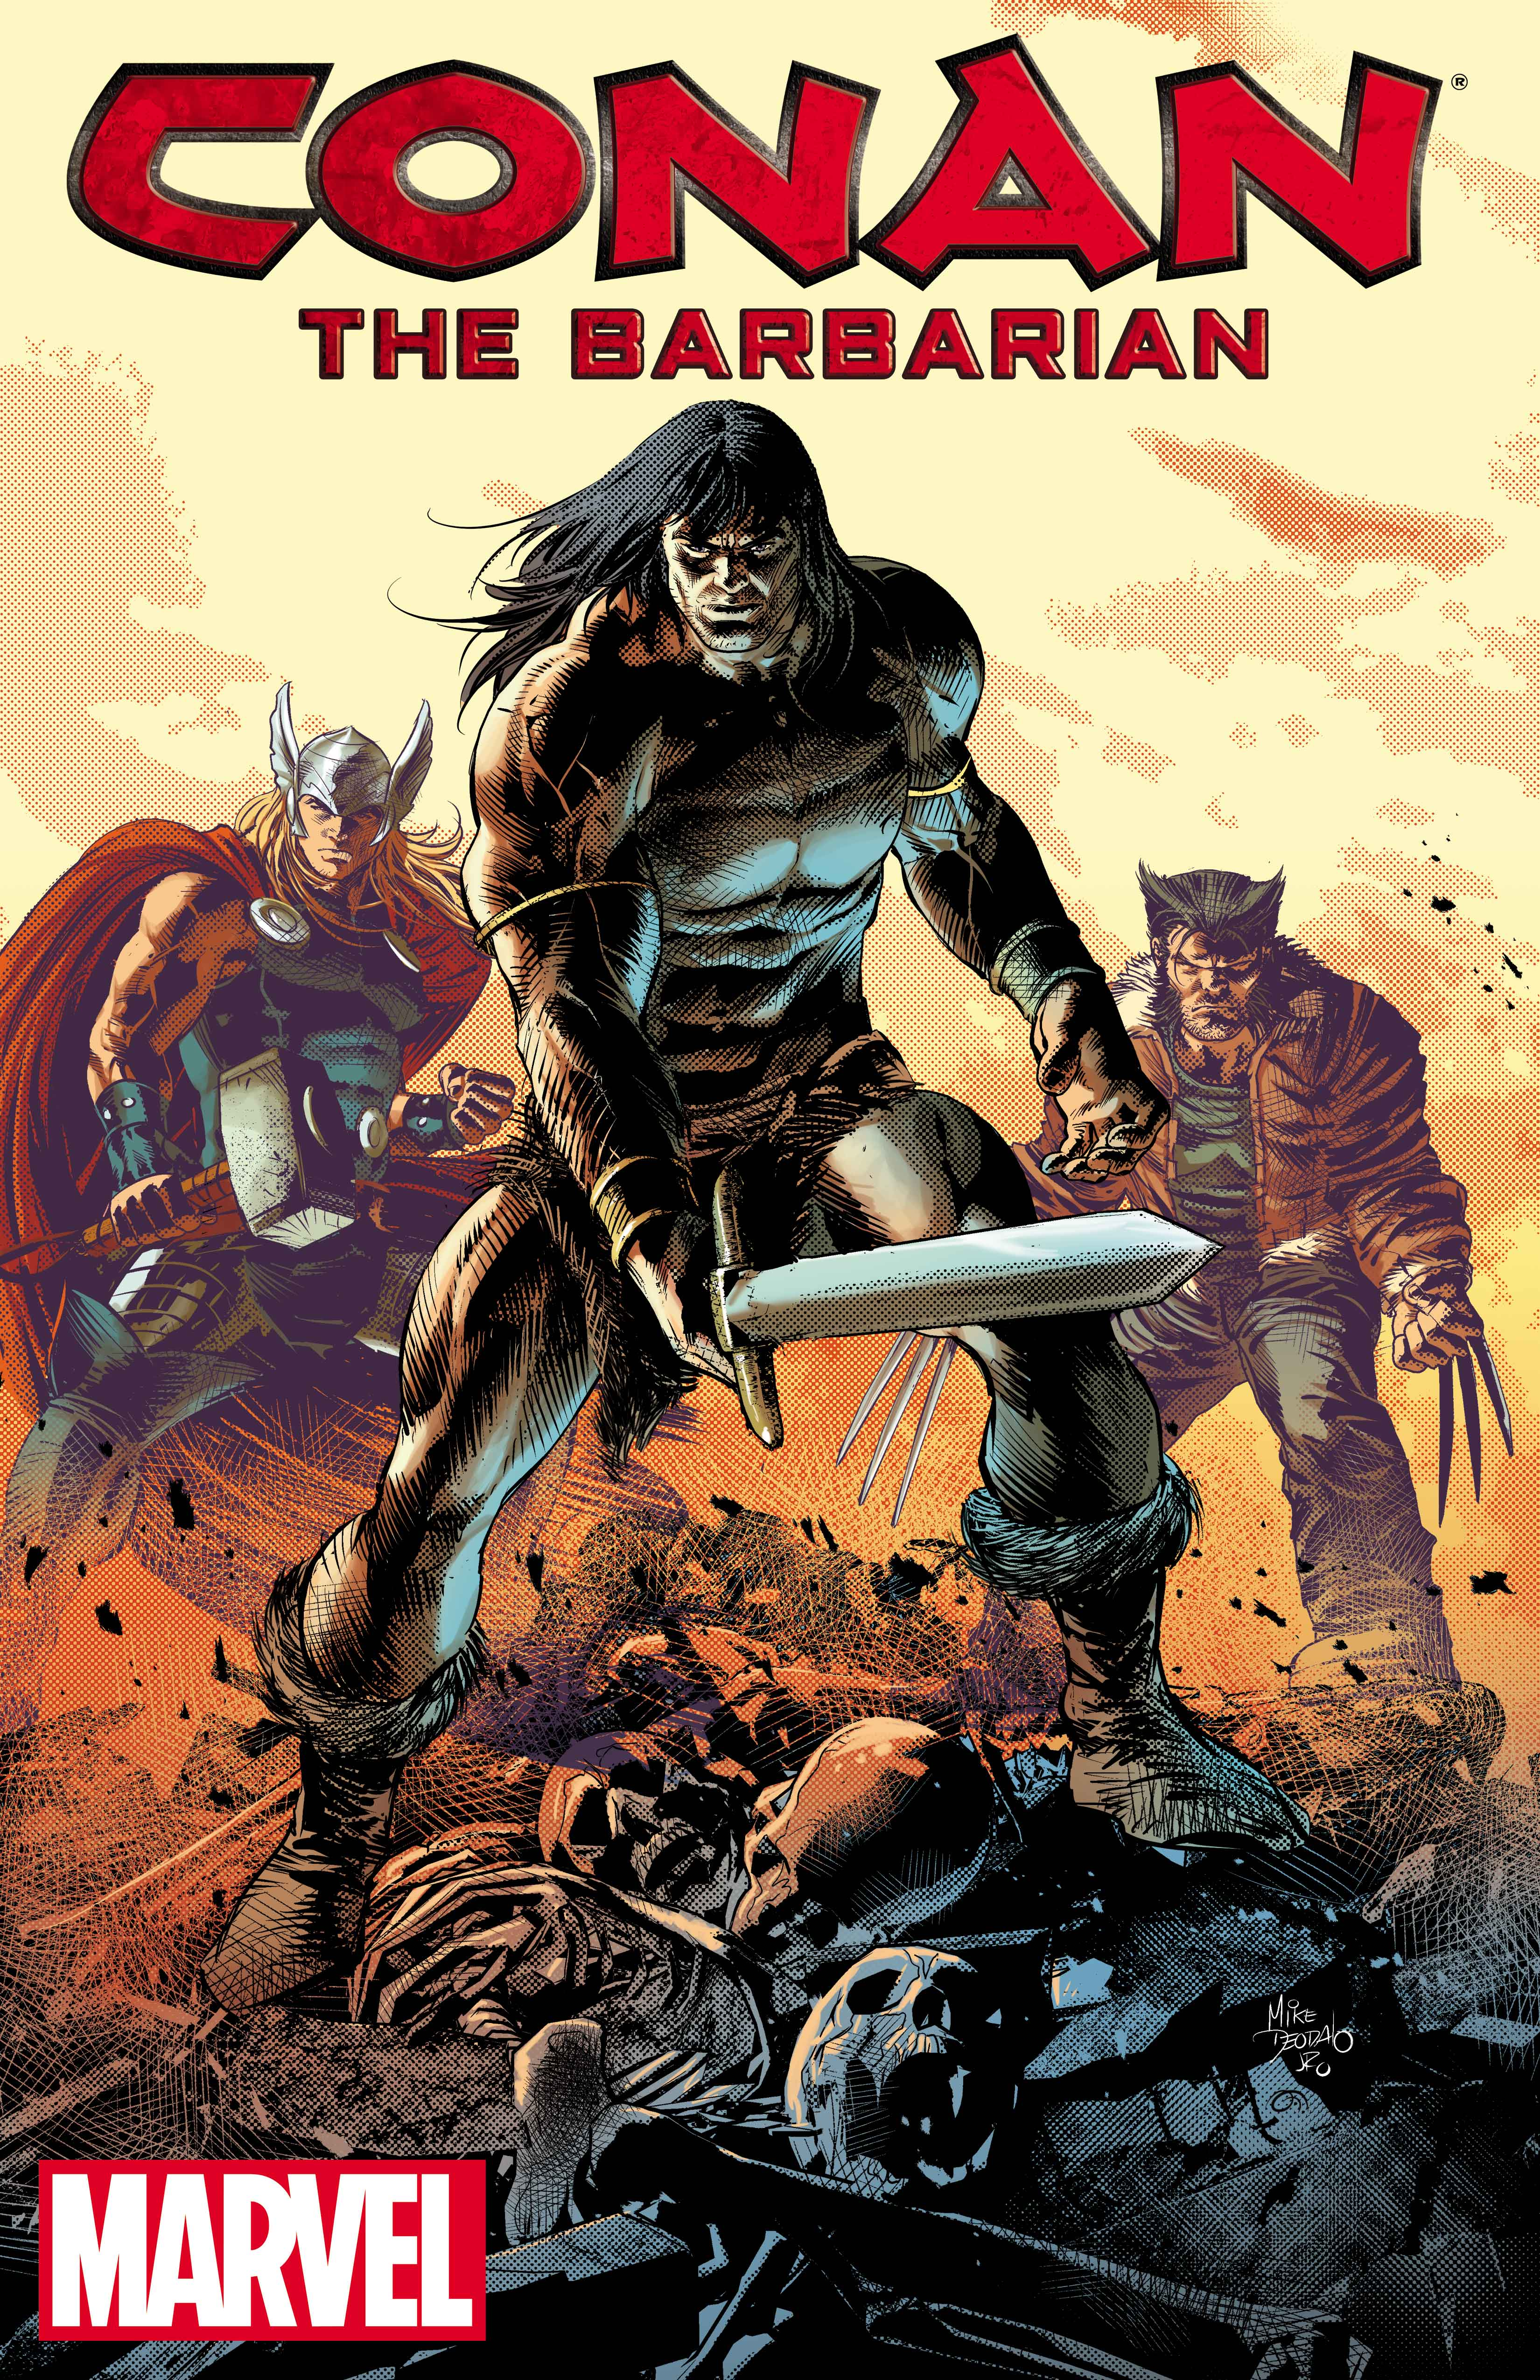 Conan the Barbarian art by Mike Deodato